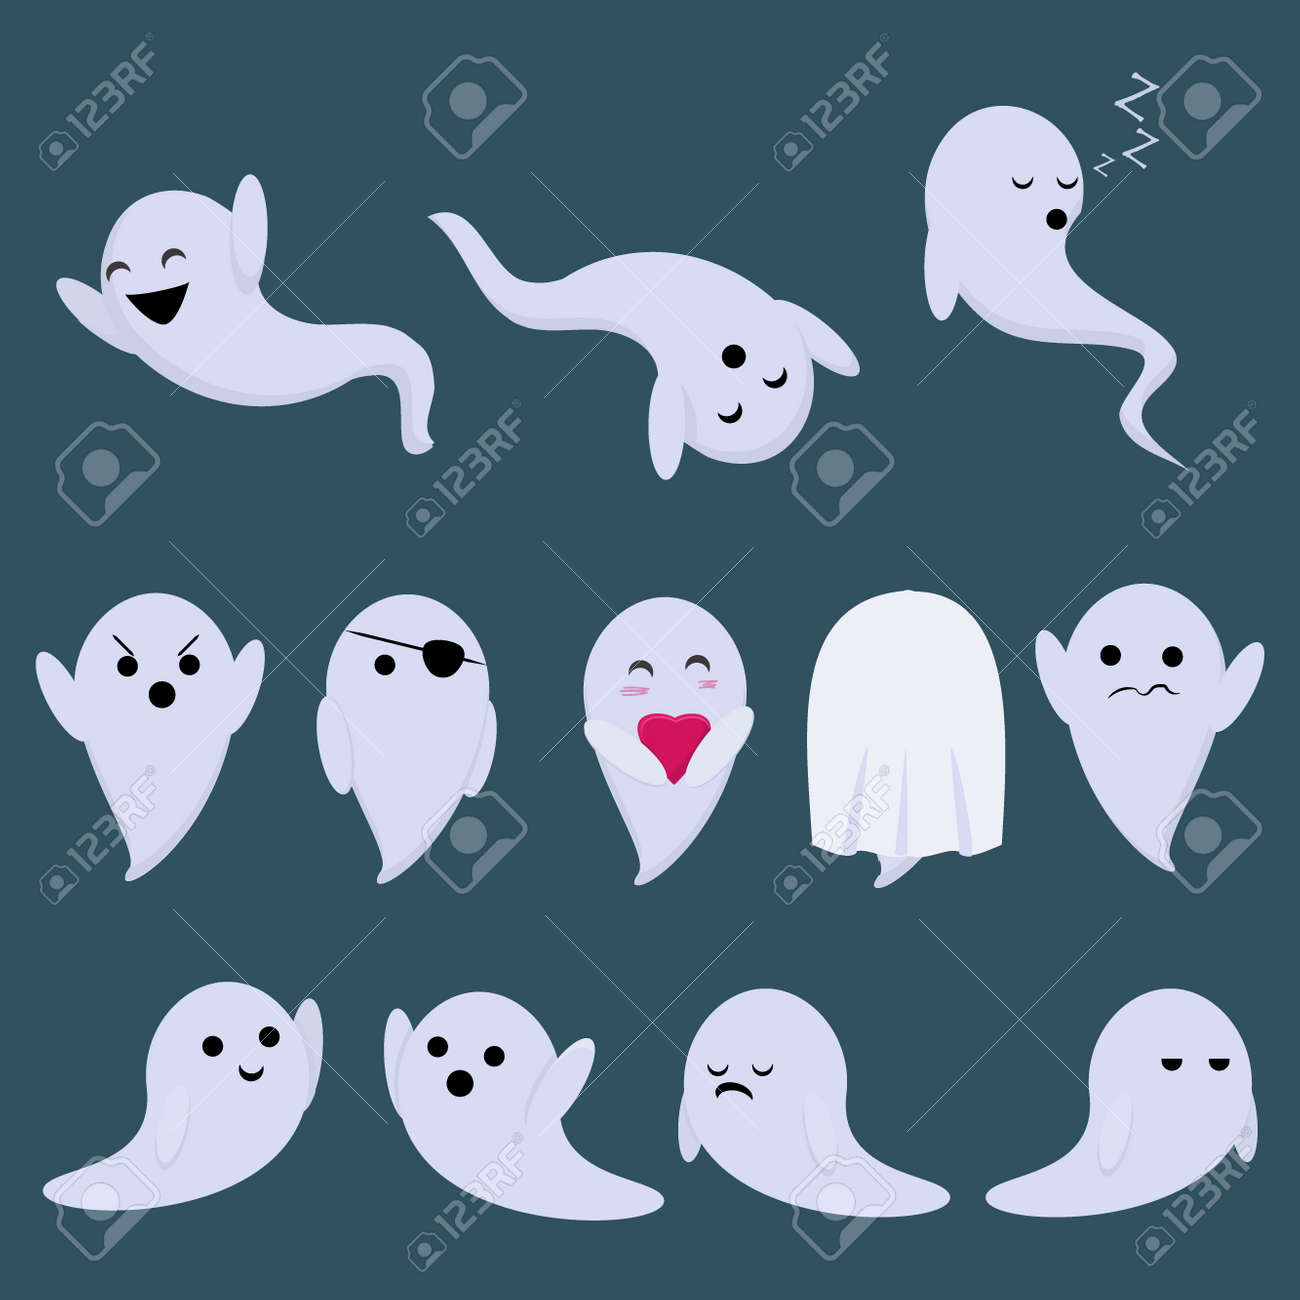 A Set Of Vector Stickers For A Holiday Of Halloween With Ghosts Royalty Free Cliparts Vectors And Stock Illustration Image 90496692